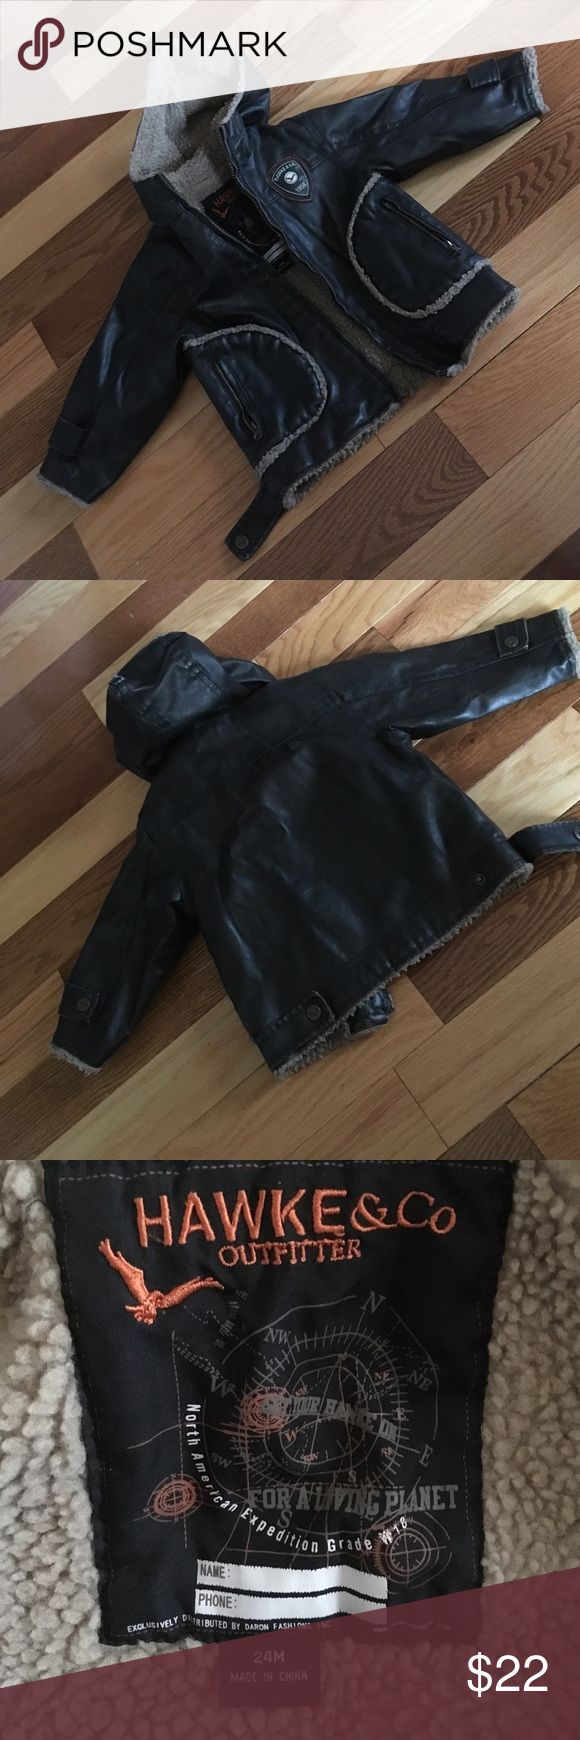 Toddler bomber Jacket Sz 24 mos Fully lined with lined hood. Zips up the front. Two front zippered  pockets. Excellent condition. Hawke & Co Jackets & Coats